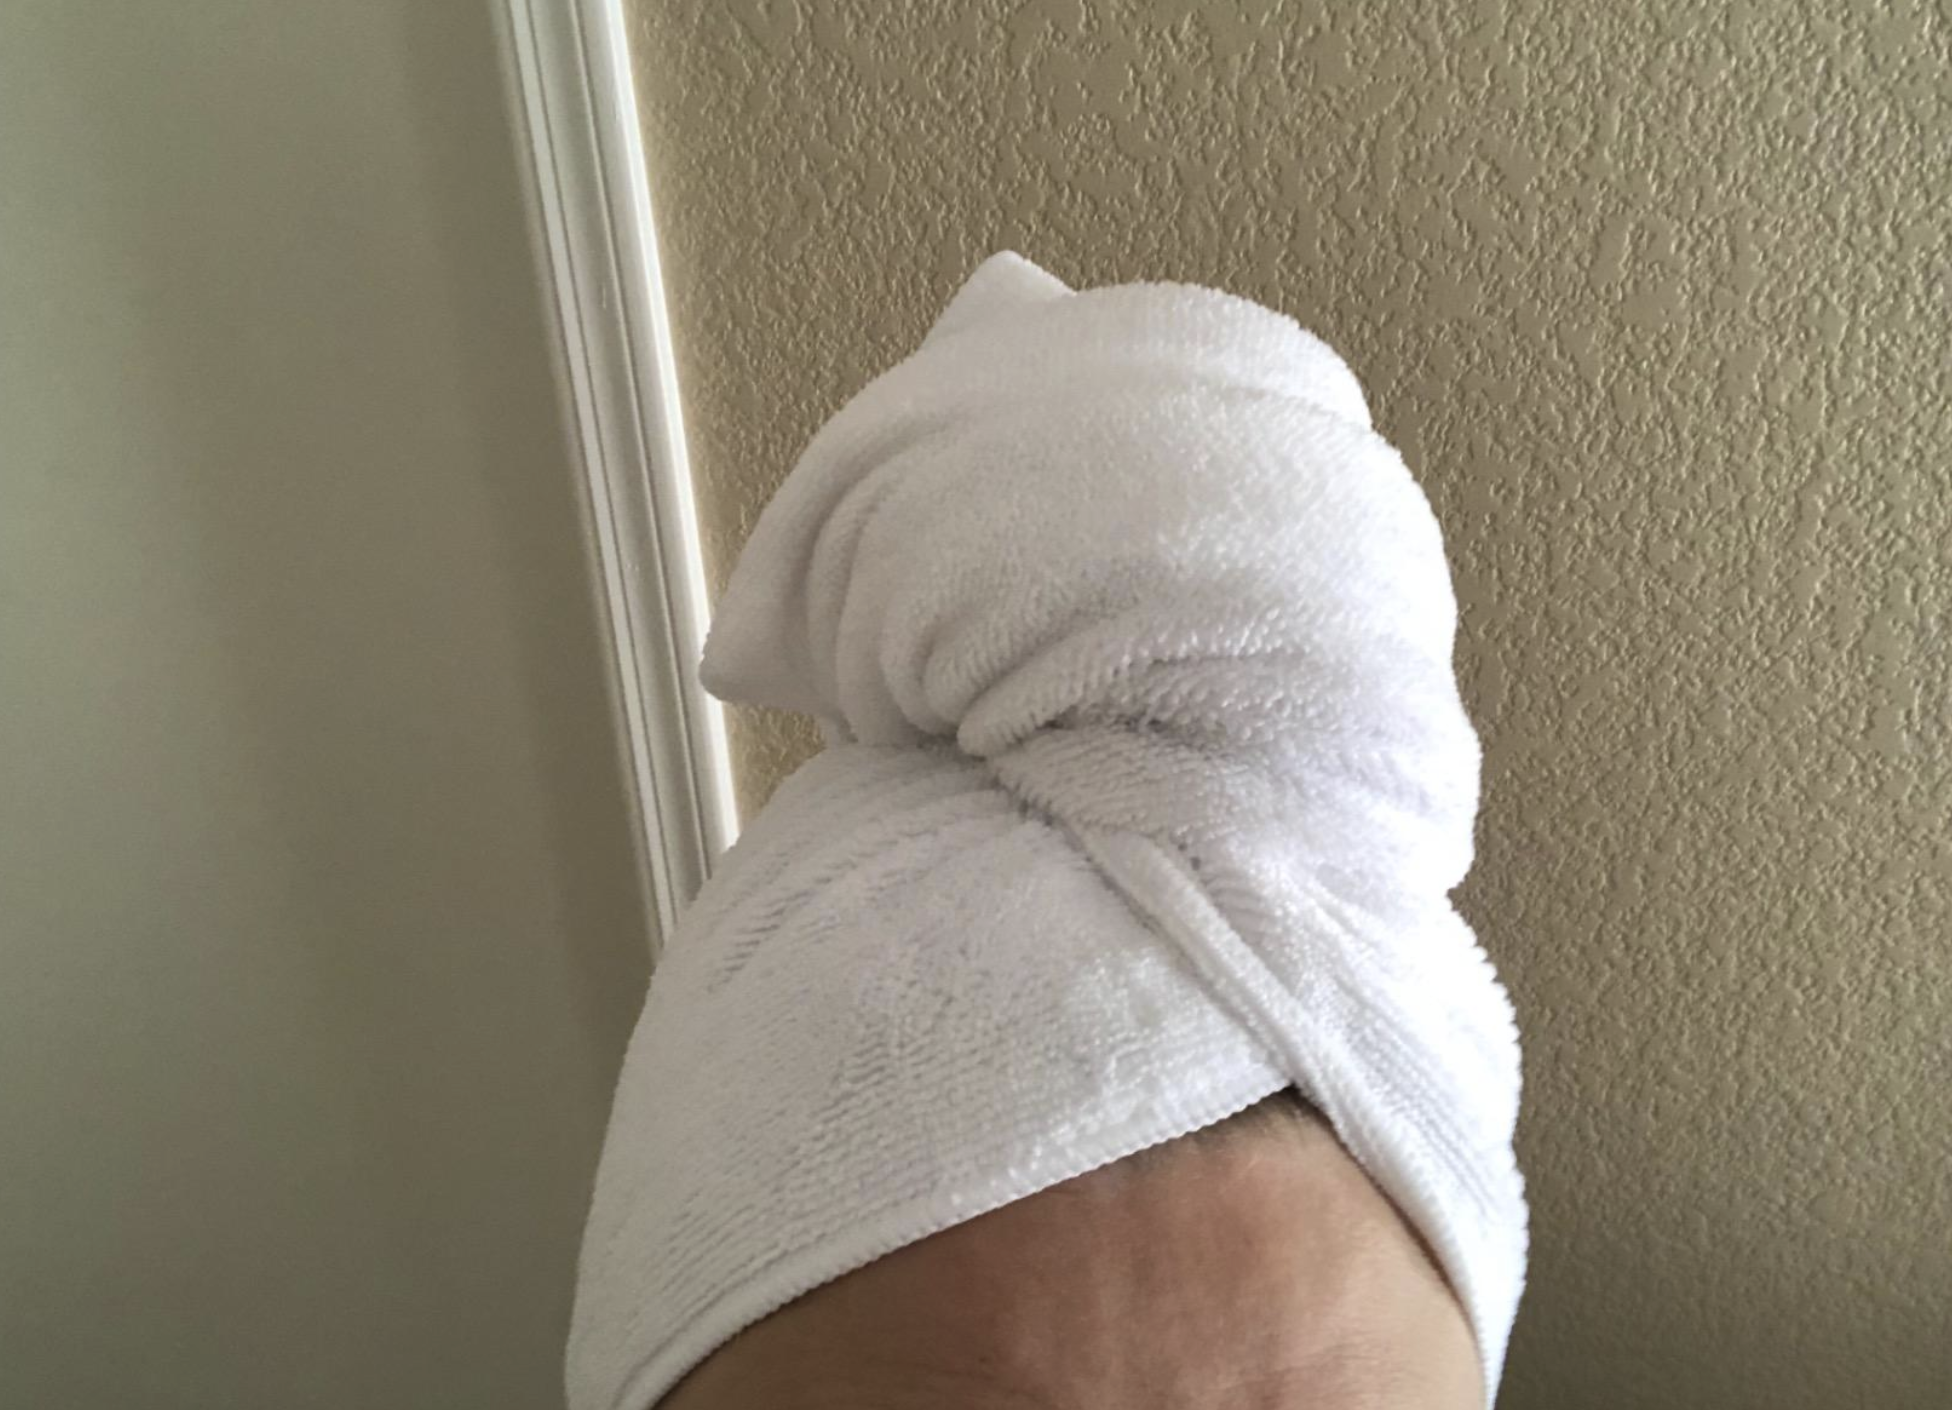 A reviewer's head with the microfiber towel wrapped around it